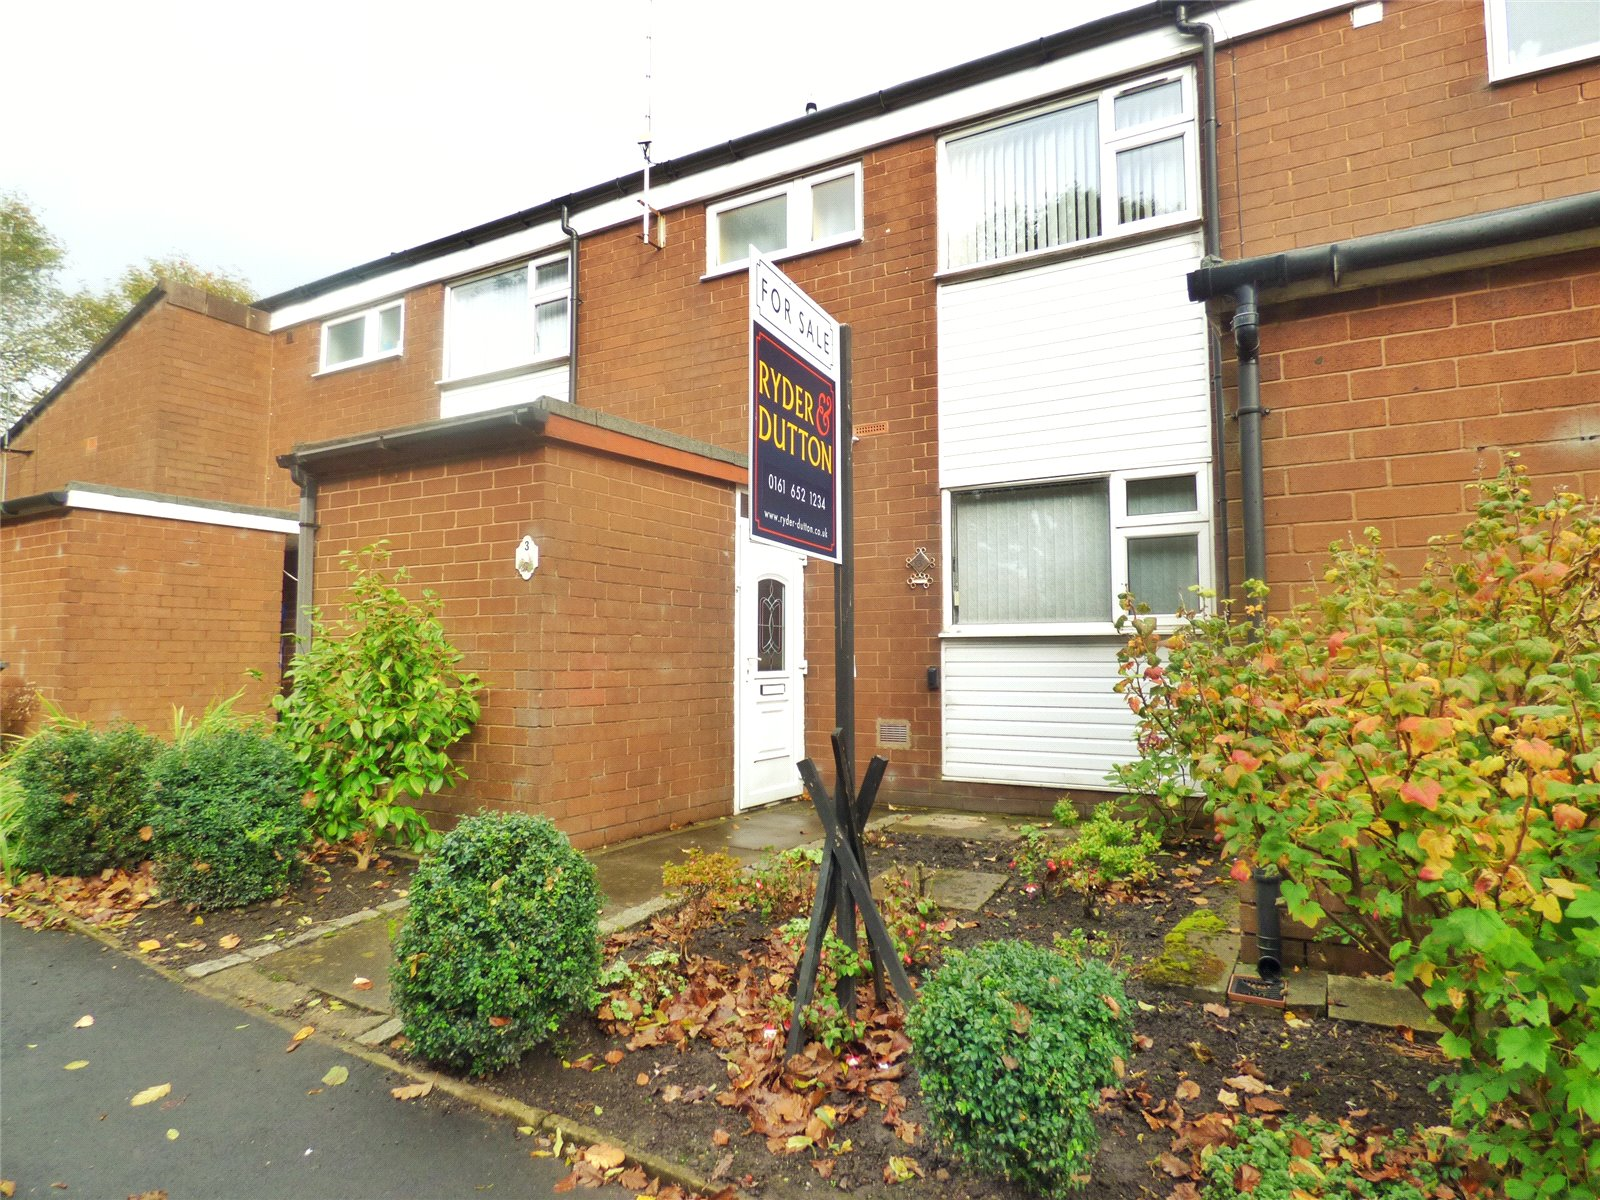 2 Bedrooms Terraced House for sale in Merlin Close, Bardsley, Oldham, Greater Manchester, OL8